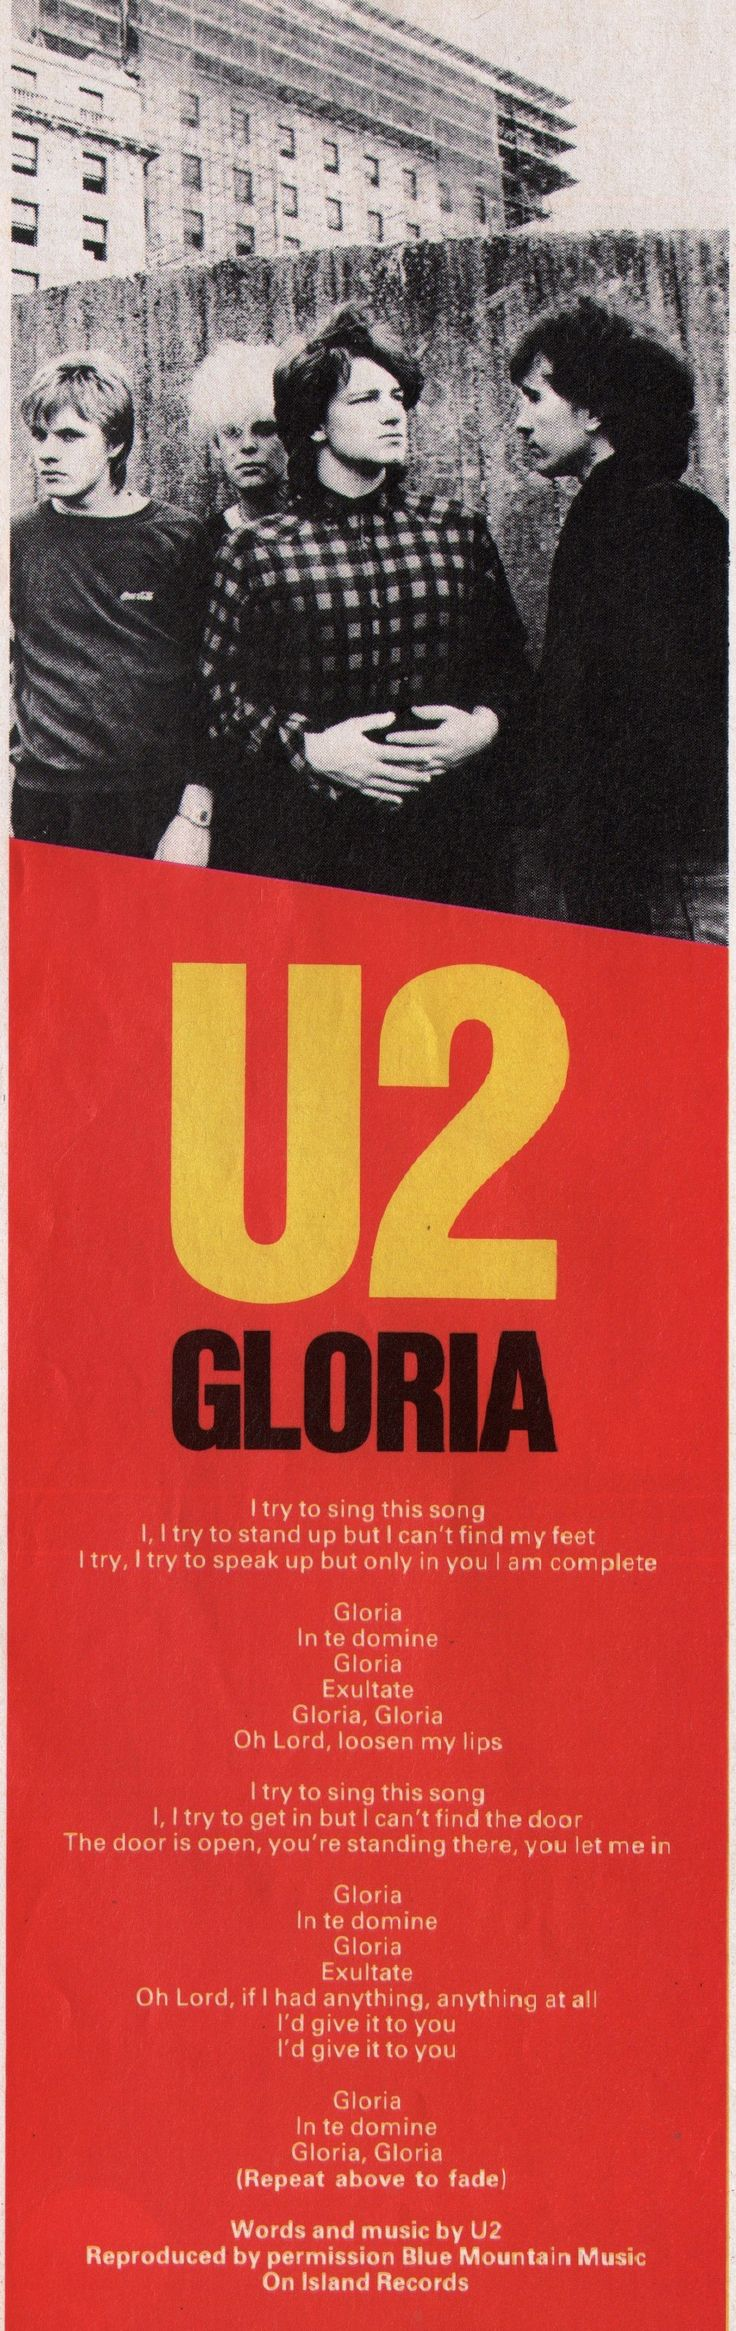 U2, Gloria 1981.  All thanks to Jesus for leaving the door open and letting me in.